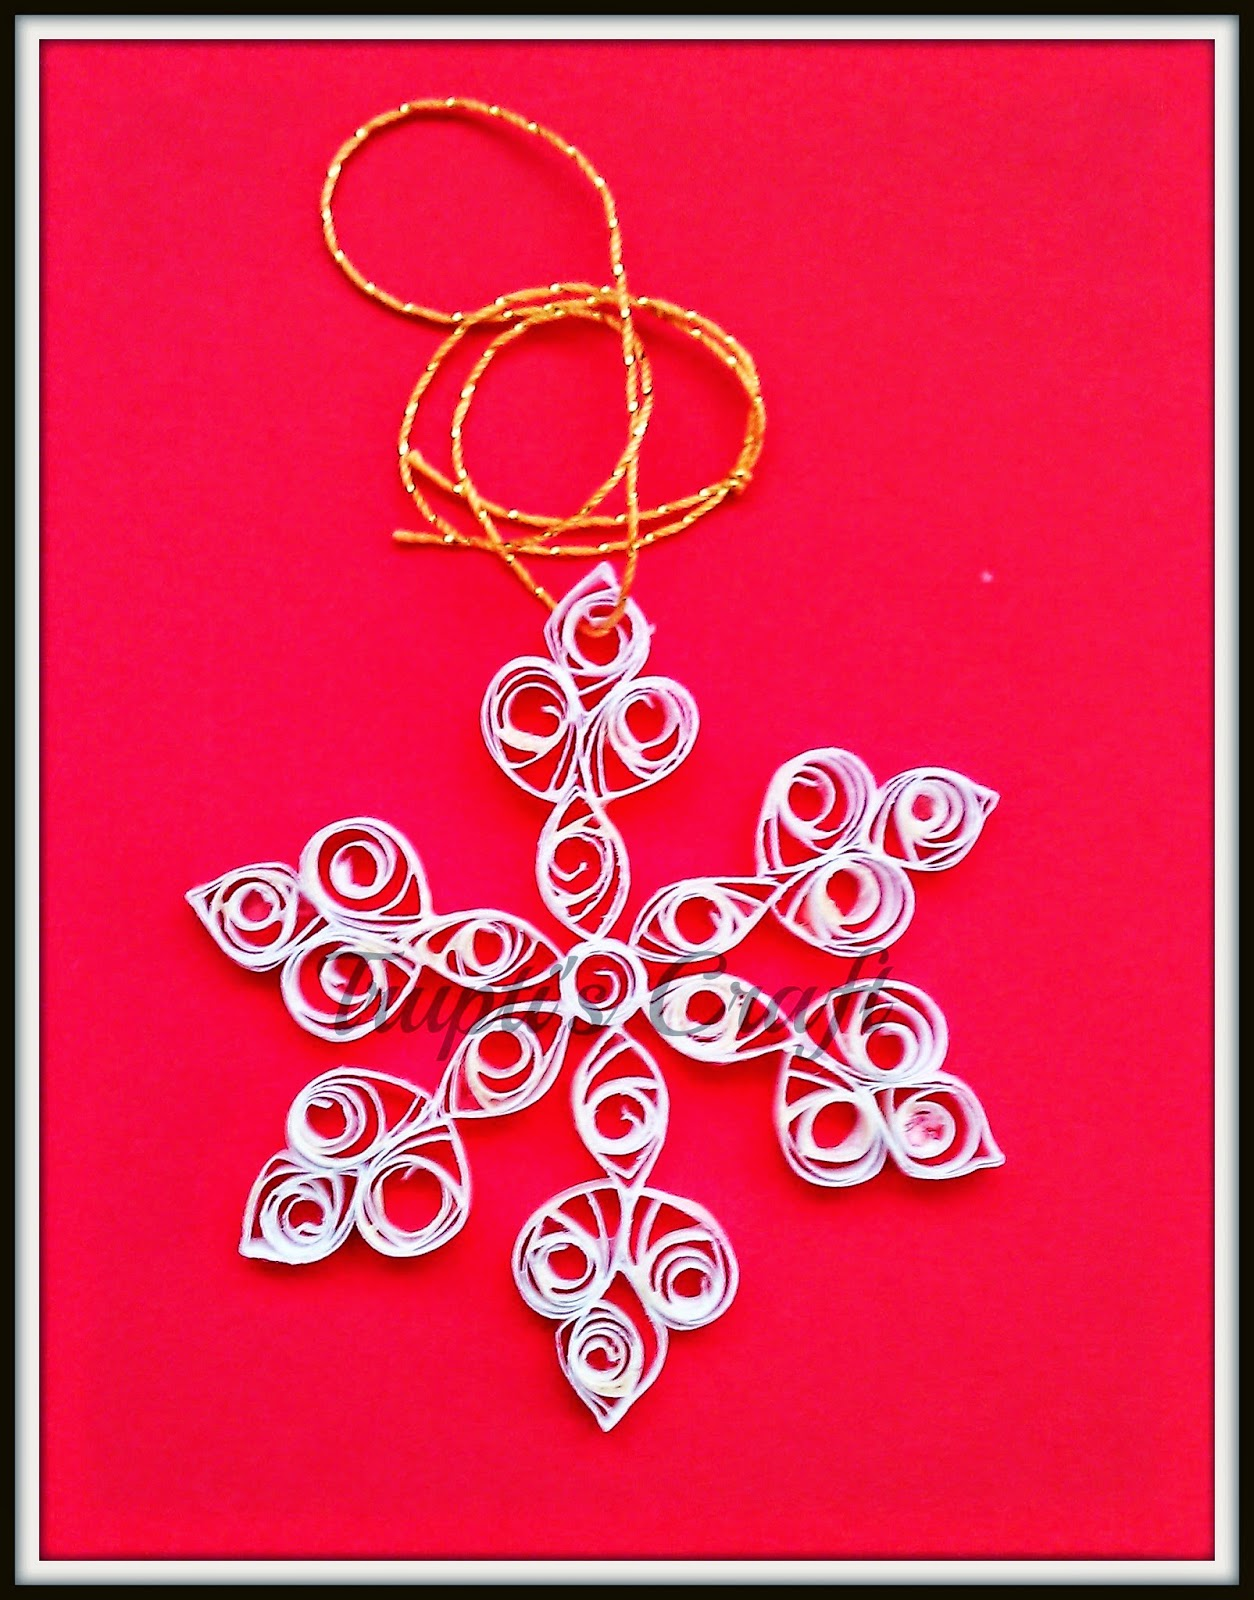 Trupti's Craft: Paper Quilling Christmas Ornaments - photo#20